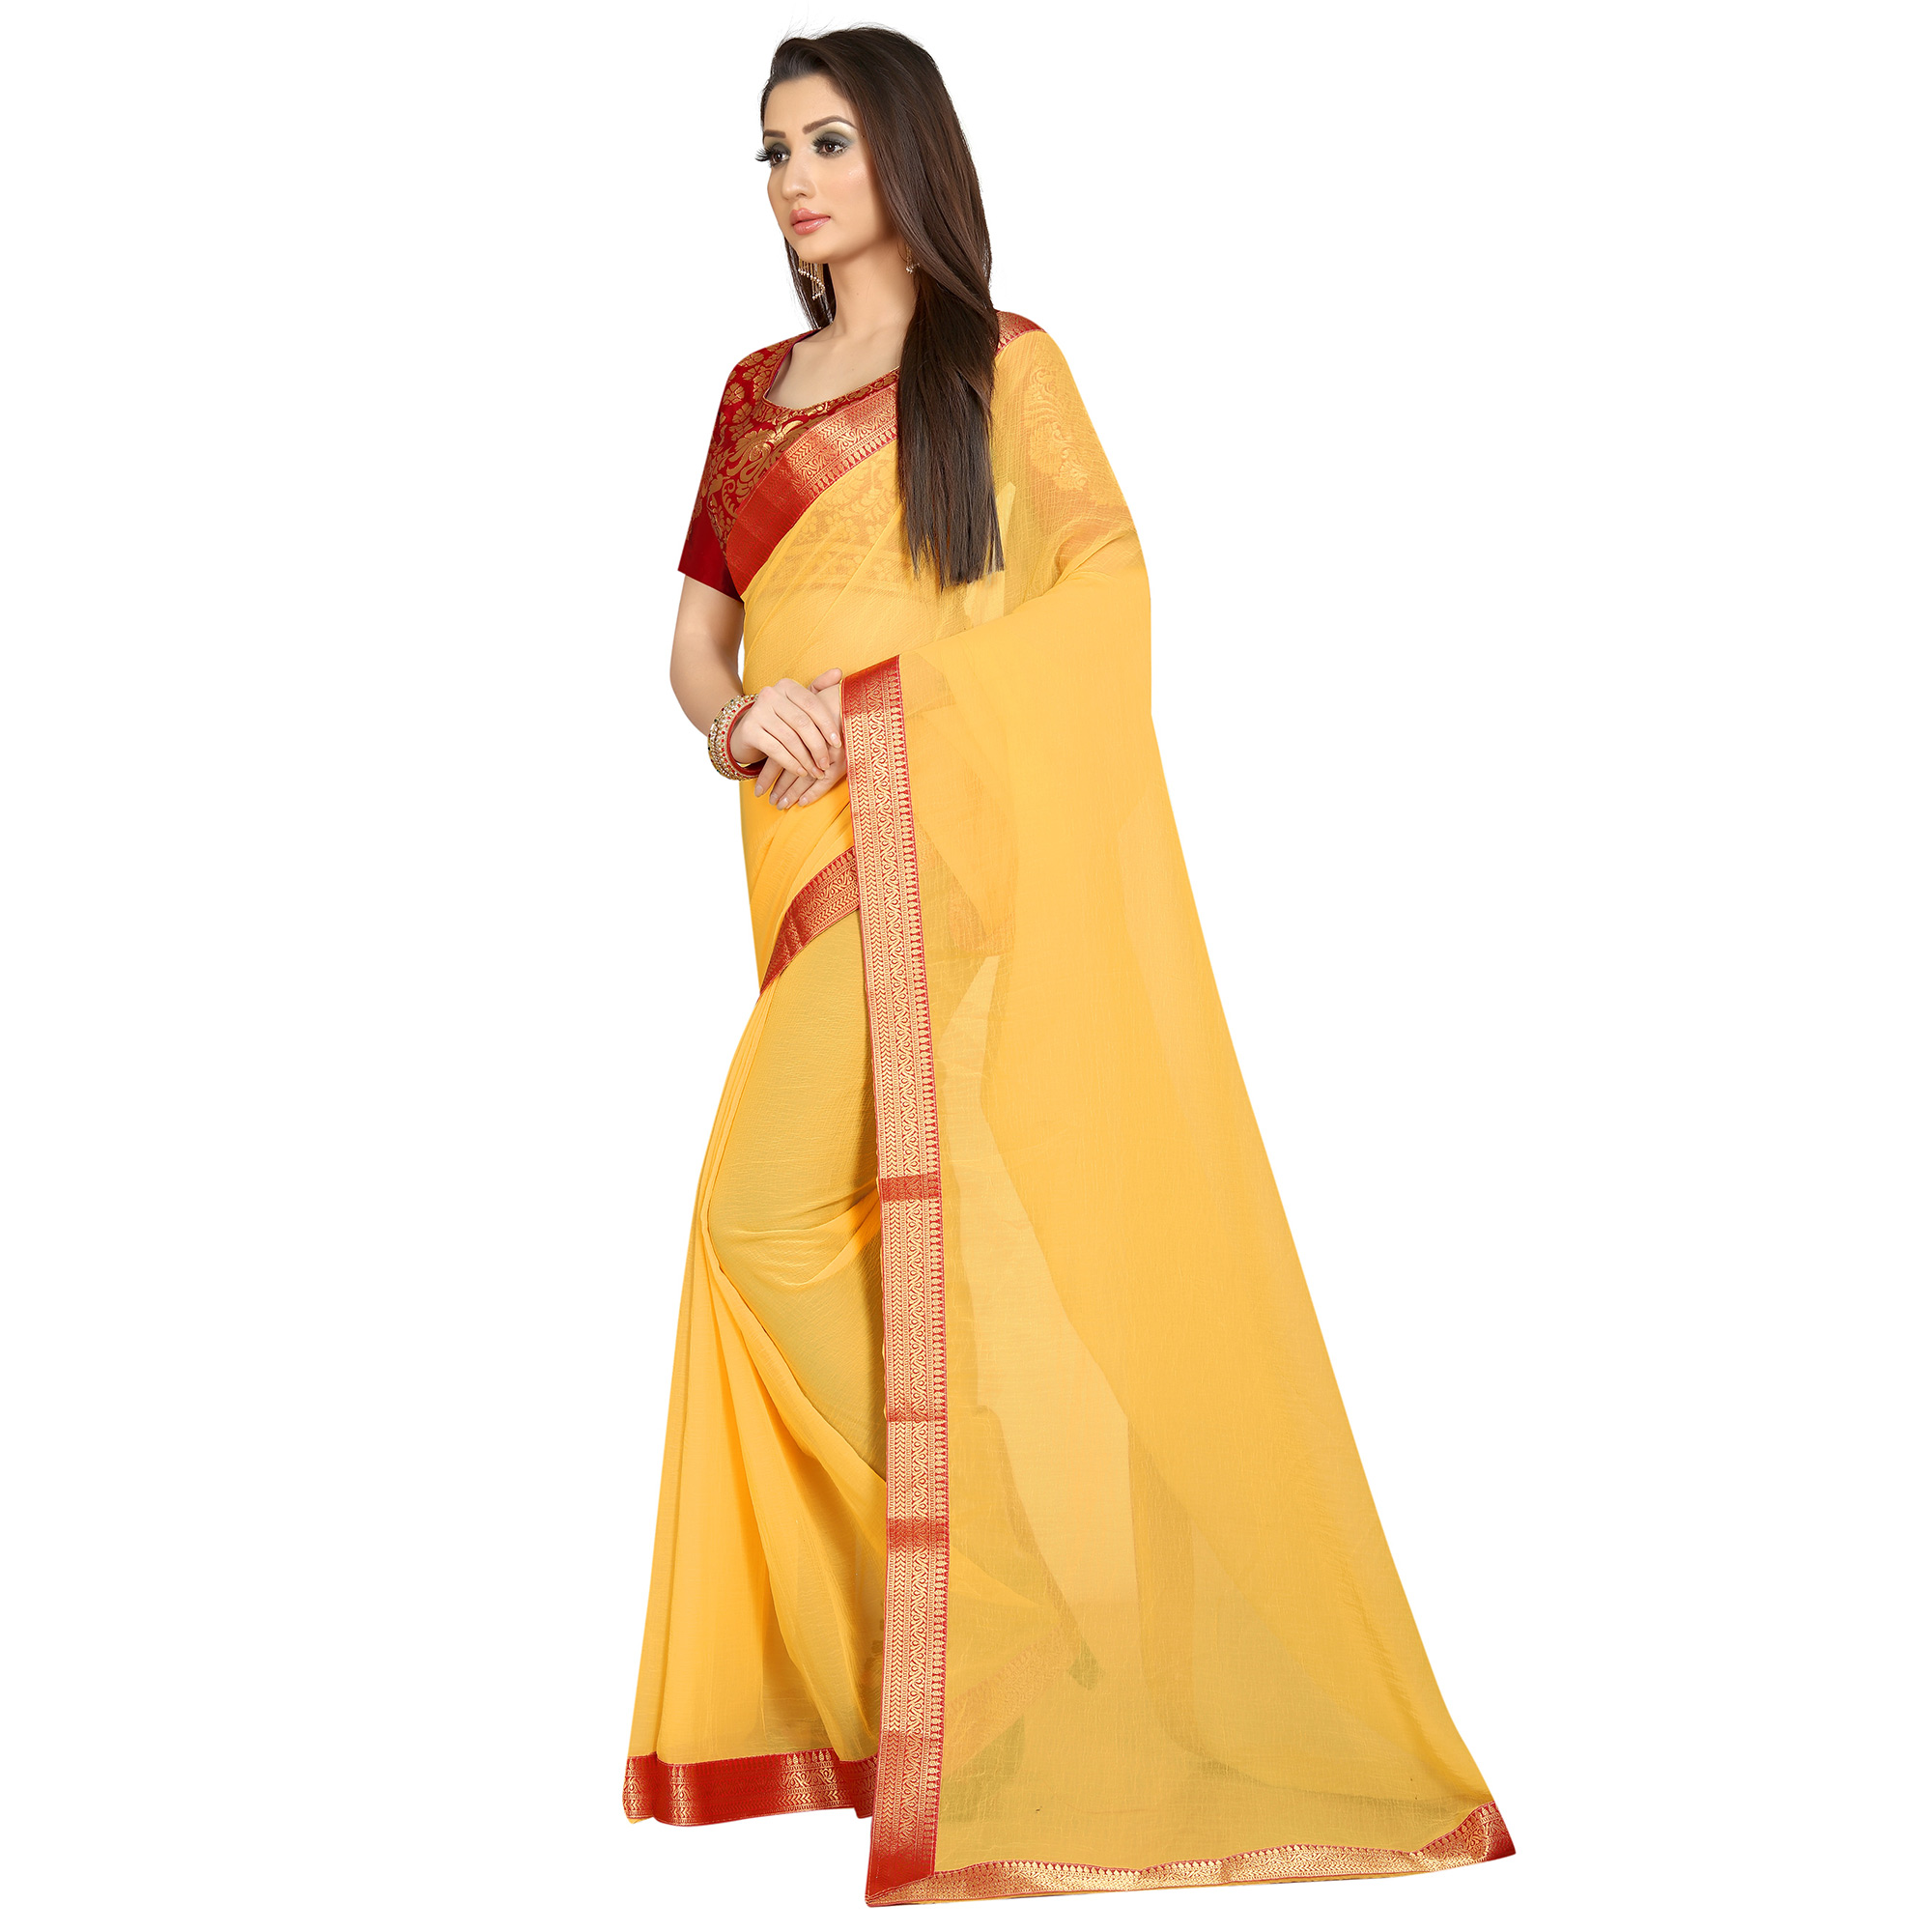 Mesmeric Yellow-Red Colored Partywear Chiffon Saree